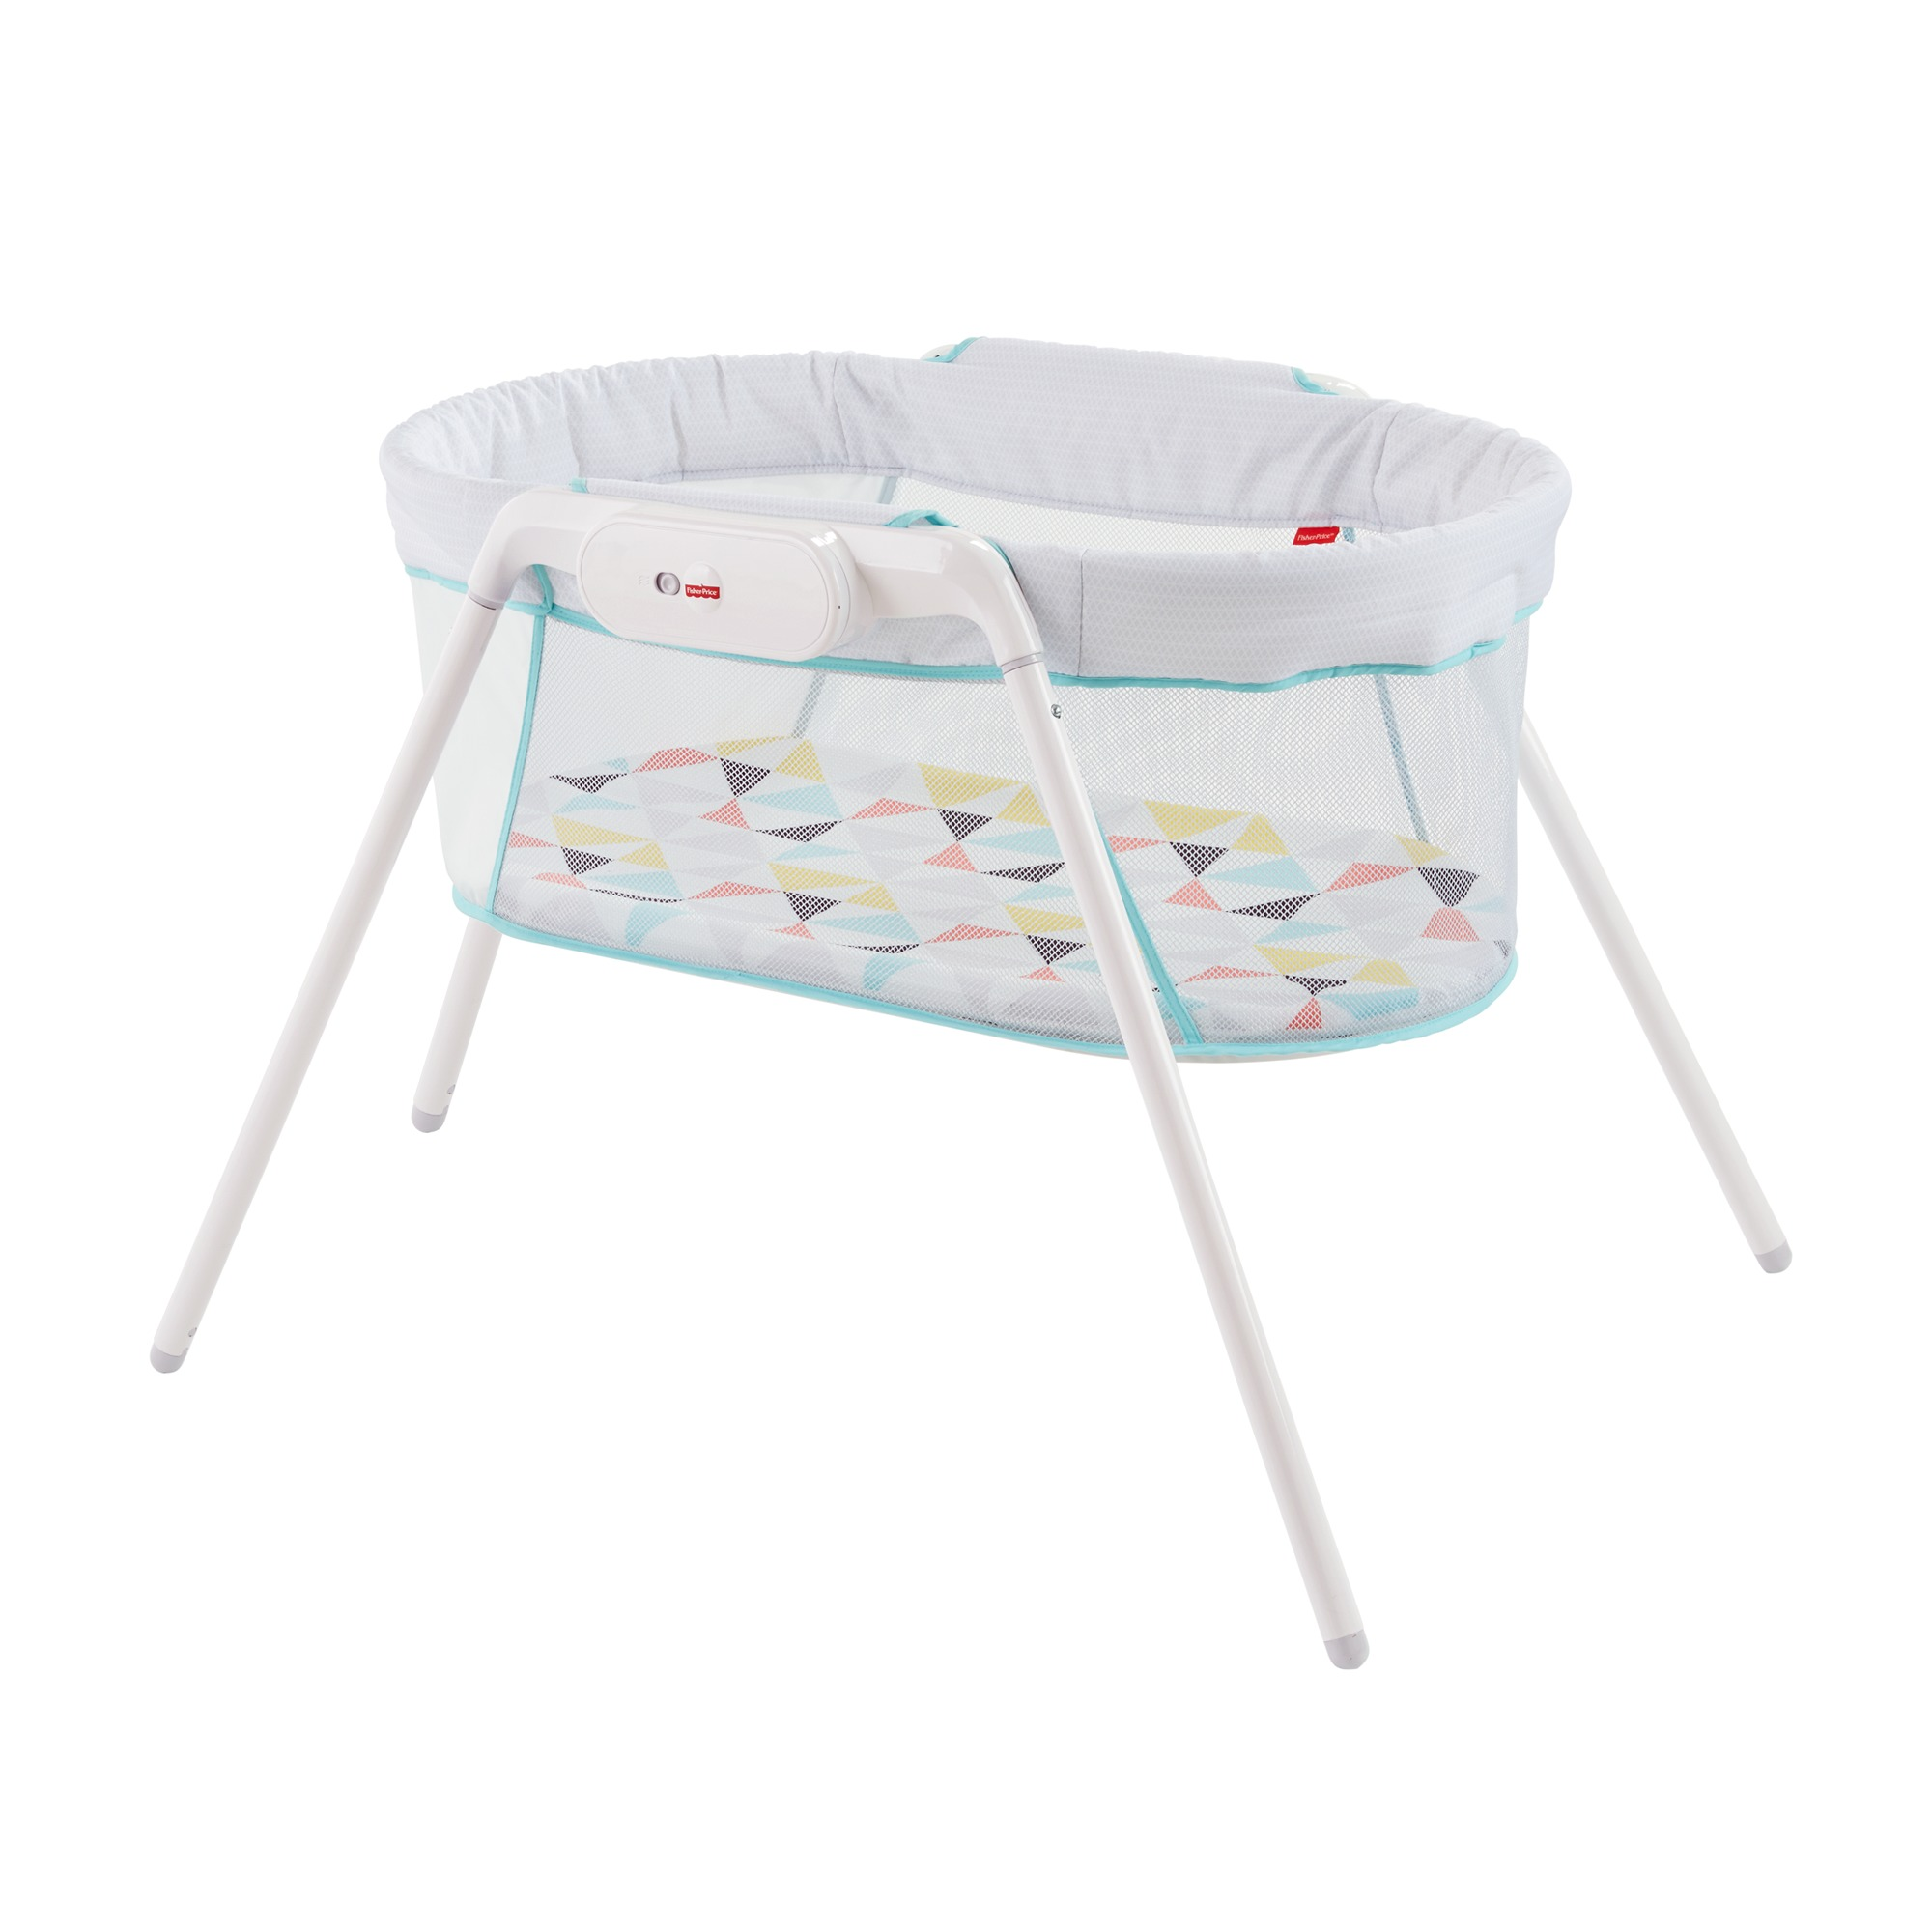 Fisher Price Stow 'N Go Bassinet with Travel Bag Set by Fisher-Price